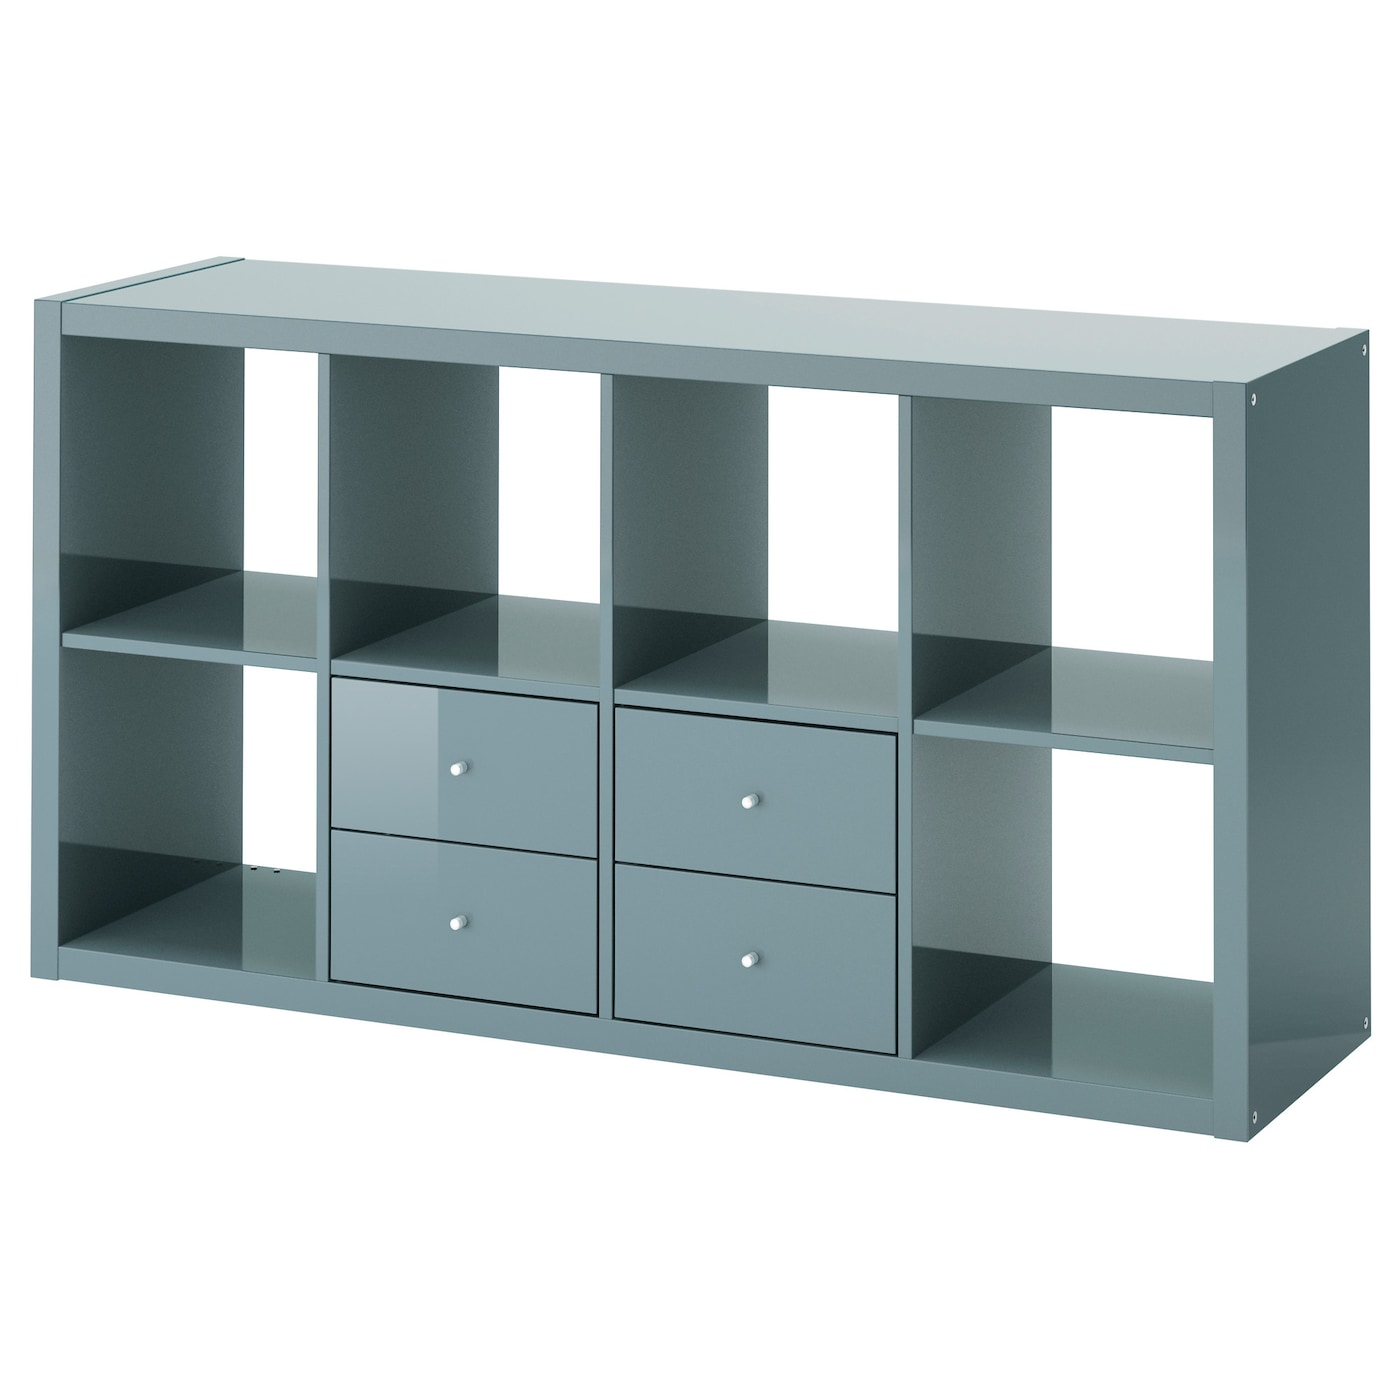 Kallax shelving unit with 2 inserts high gloss grey for Meuble 4 cases ikea